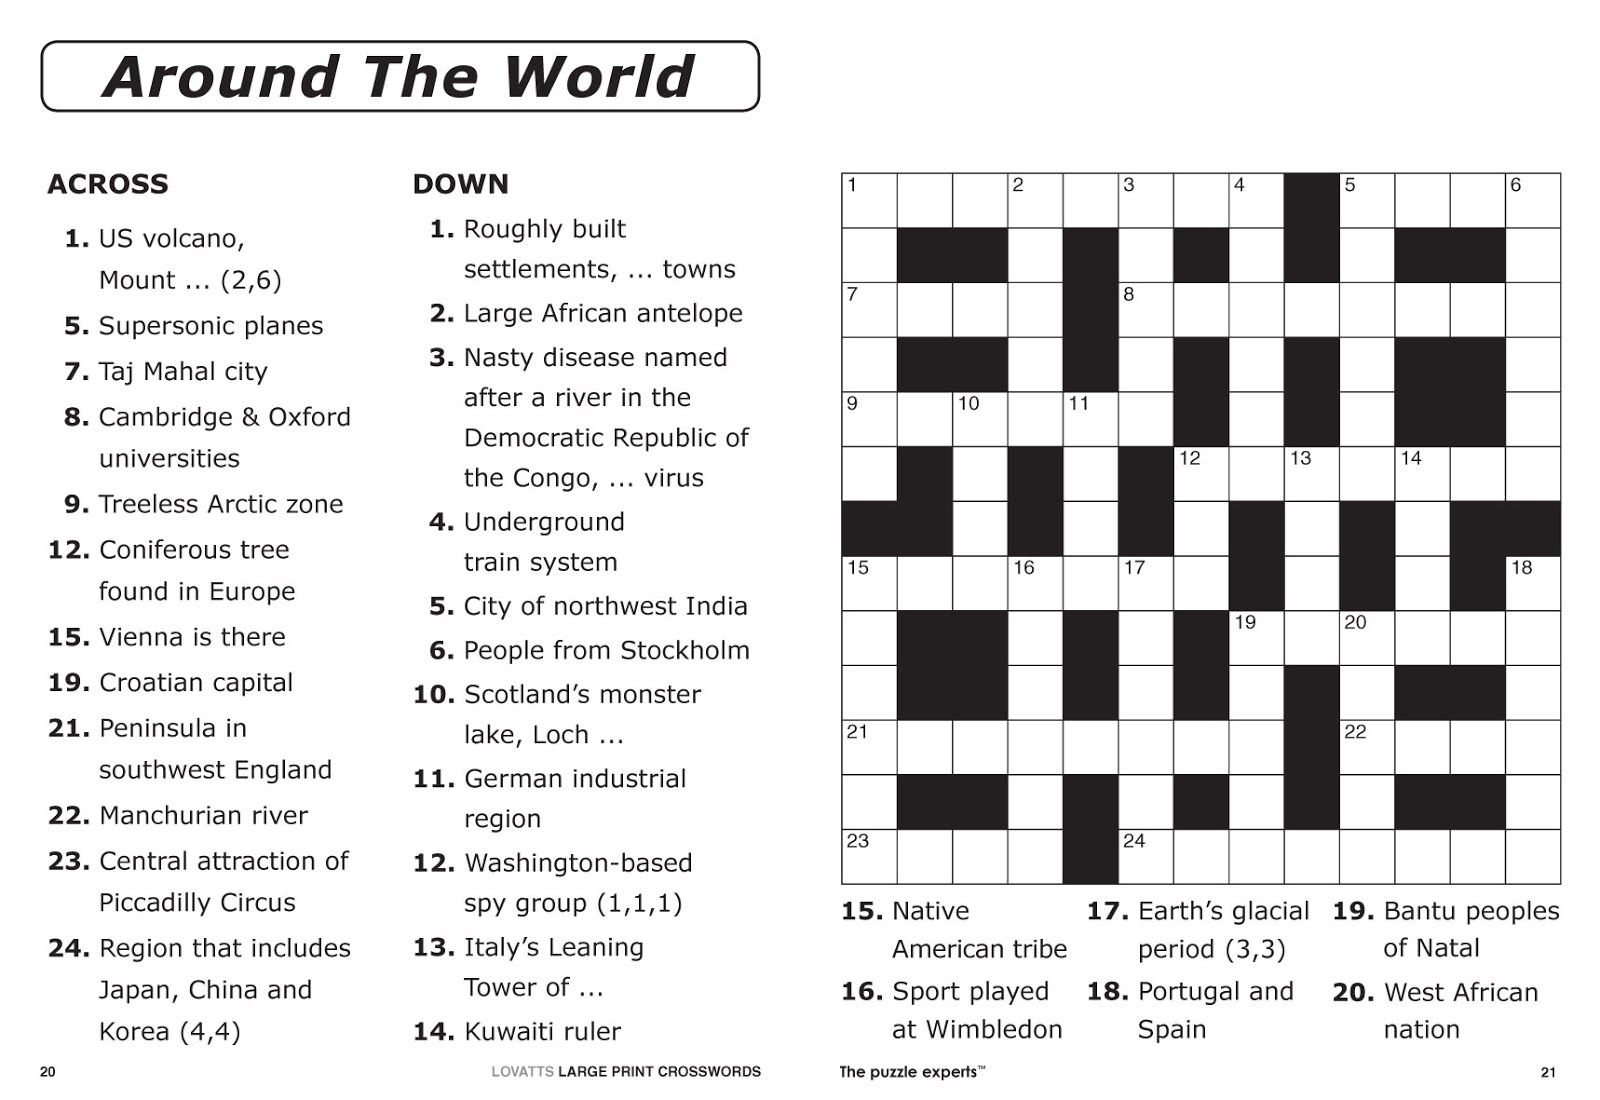 Free Printable Large Print Crossword Puzzles | M3U8 - Printable Crosswords For 13 Year Olds